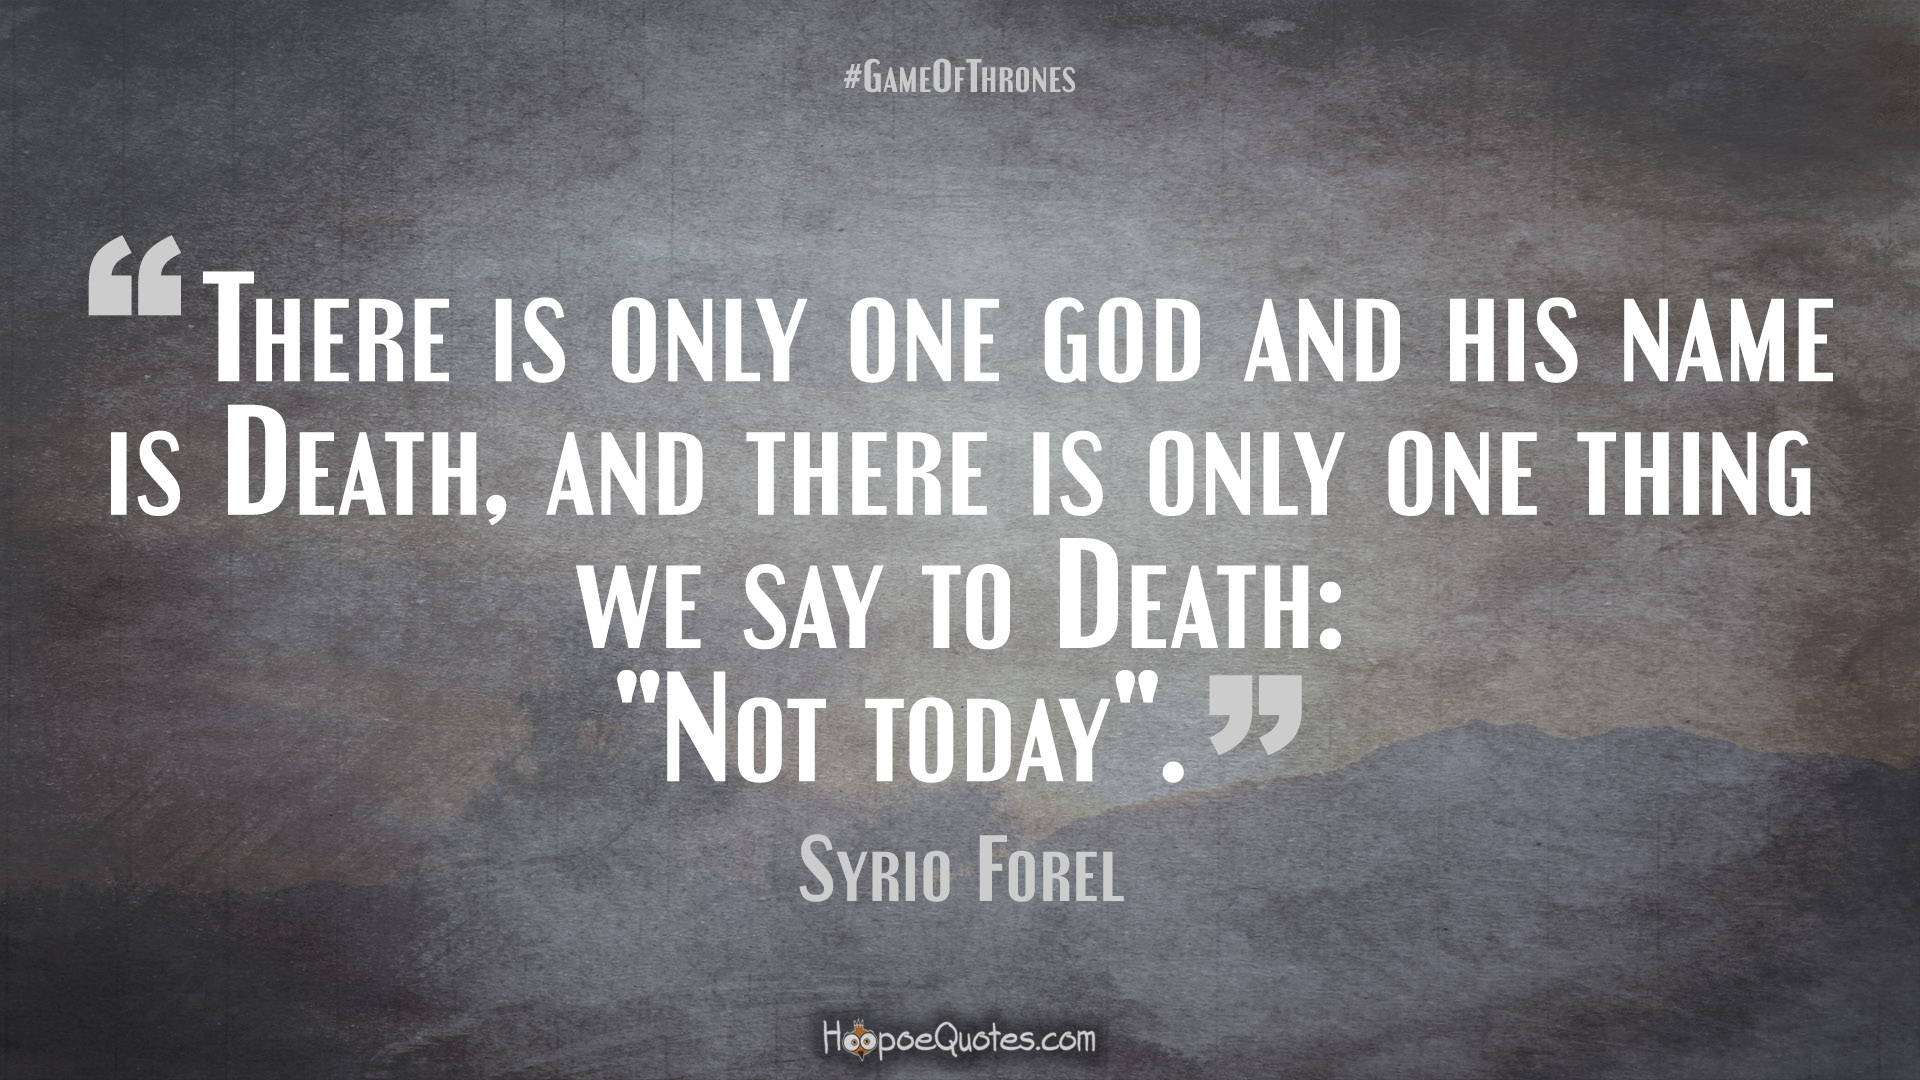 Tyrion Lannister Quotes Hd Wallpaper There Is Only One God And His Name Is Death And There Is